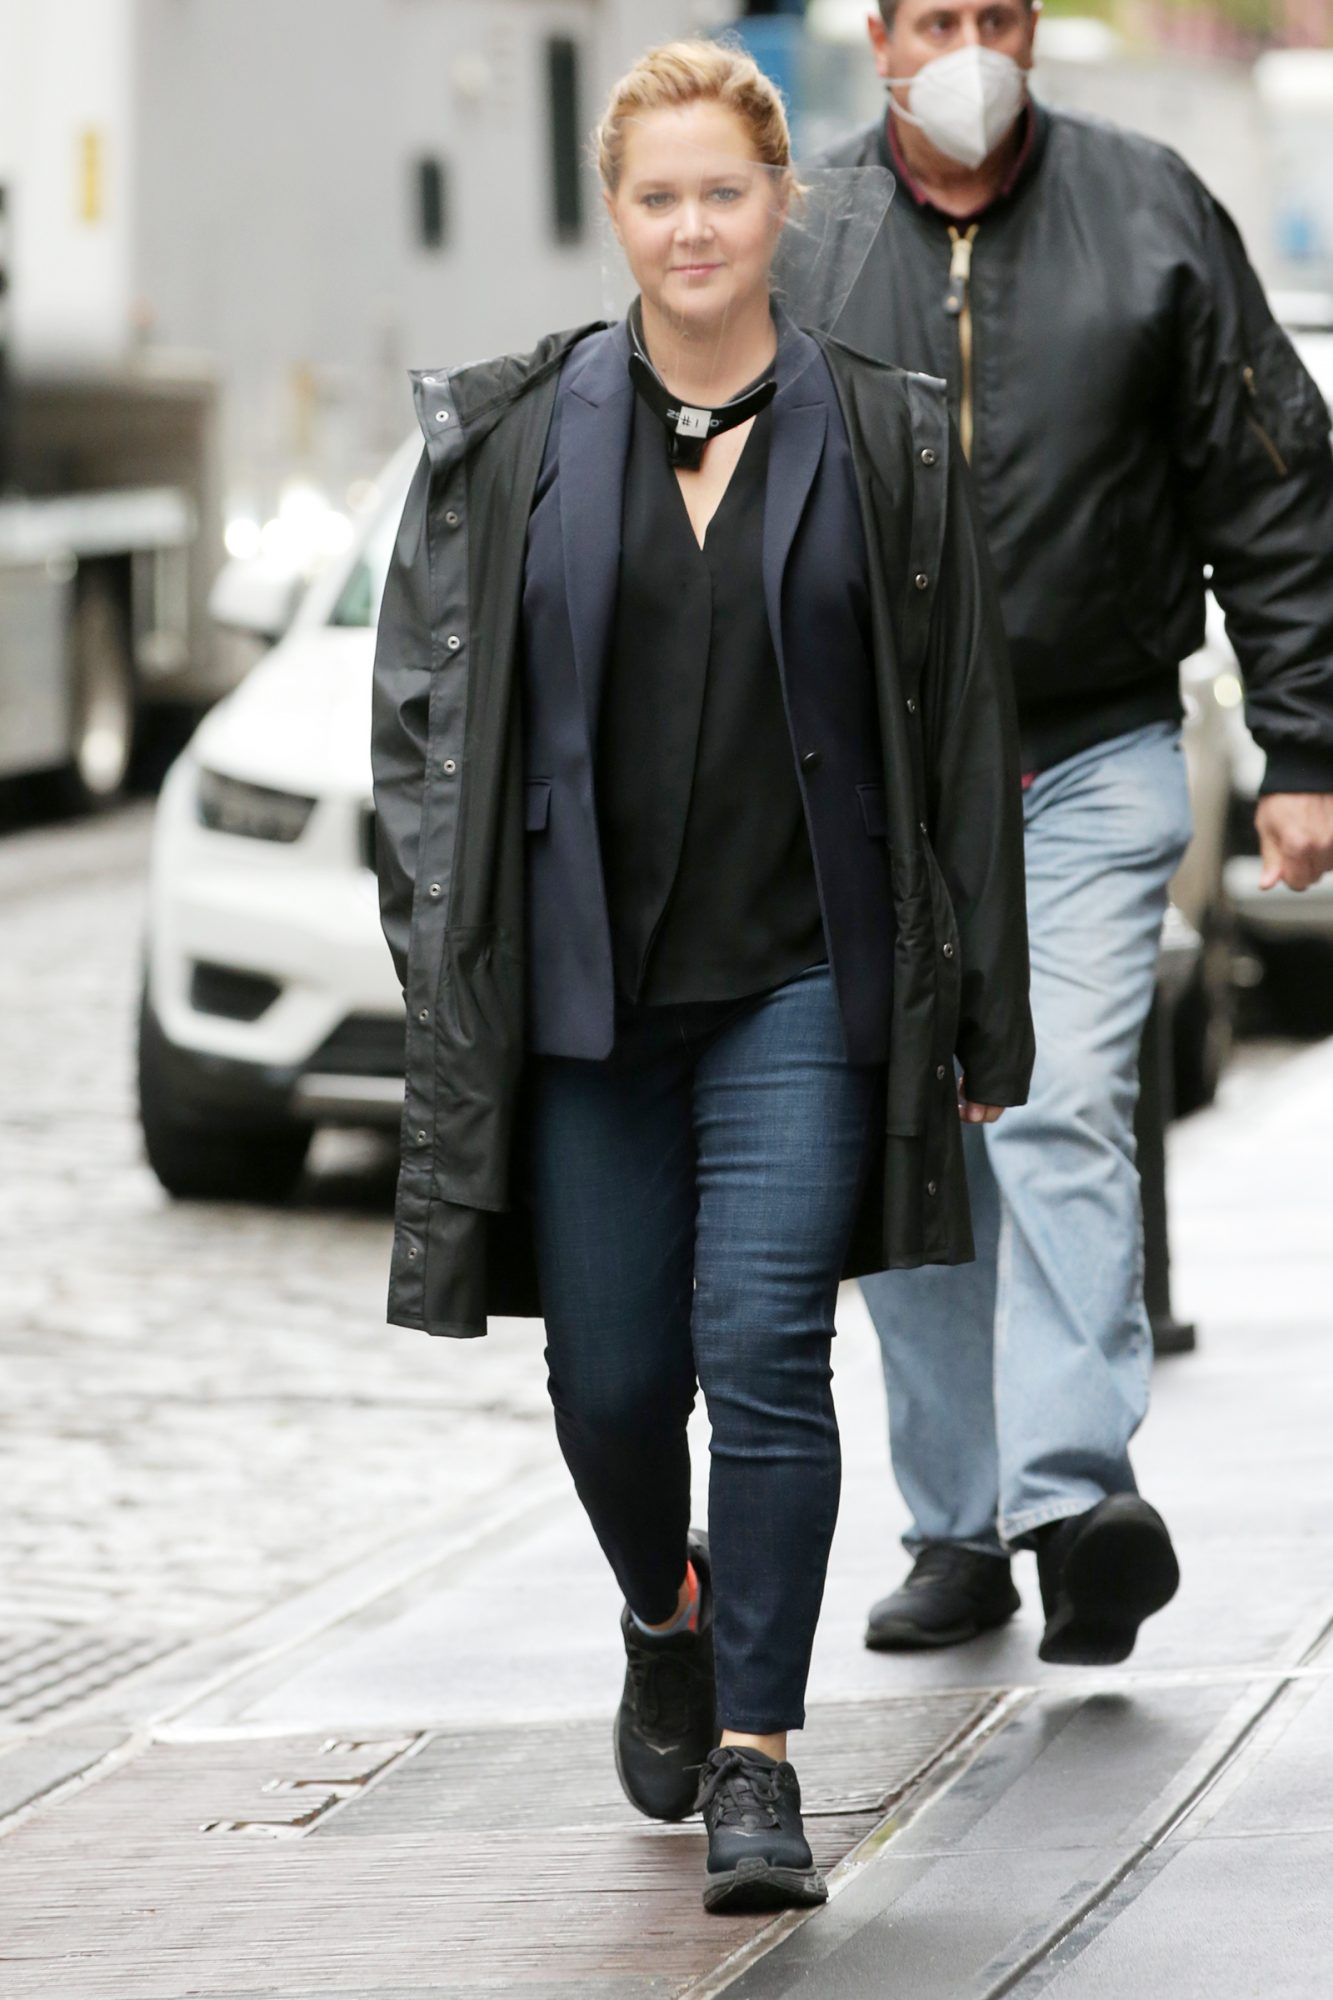 Comedian Amy Schumer walks to the set of 'Life & Beth' in New York City